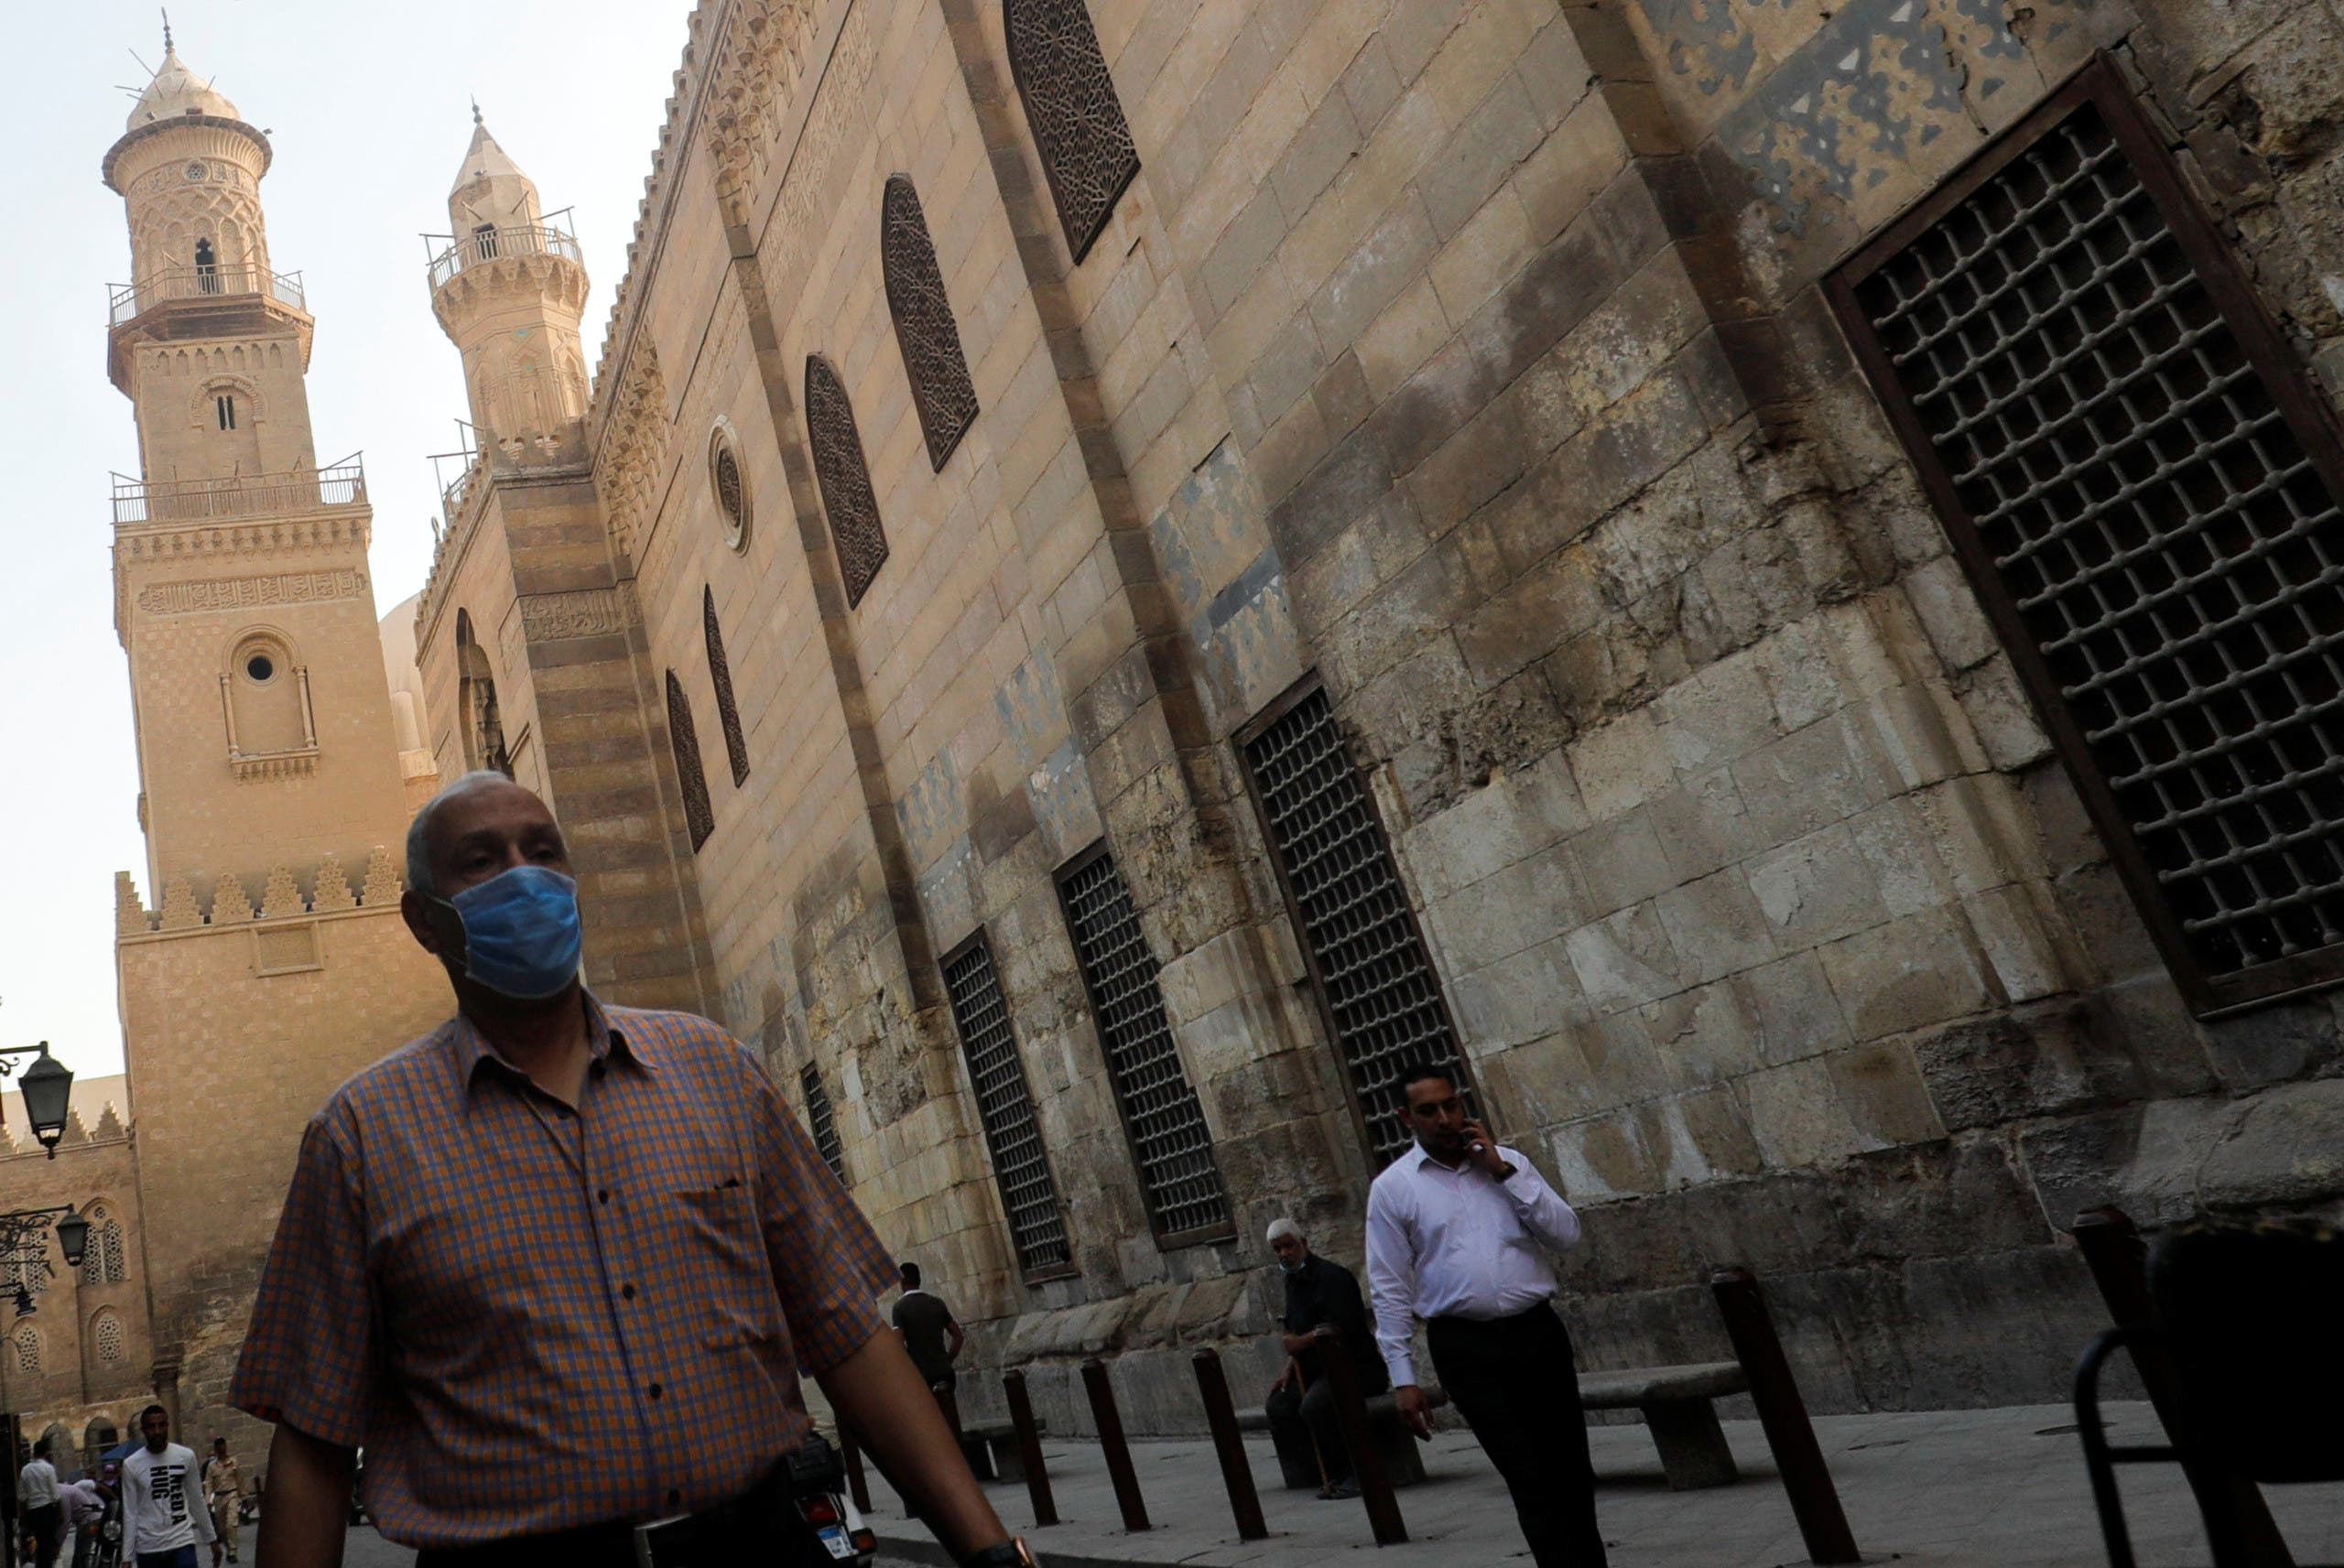 A man wearing a protective face mask walks next to others in front of closed mosques in old Cairo, Egypt. (Reuters)